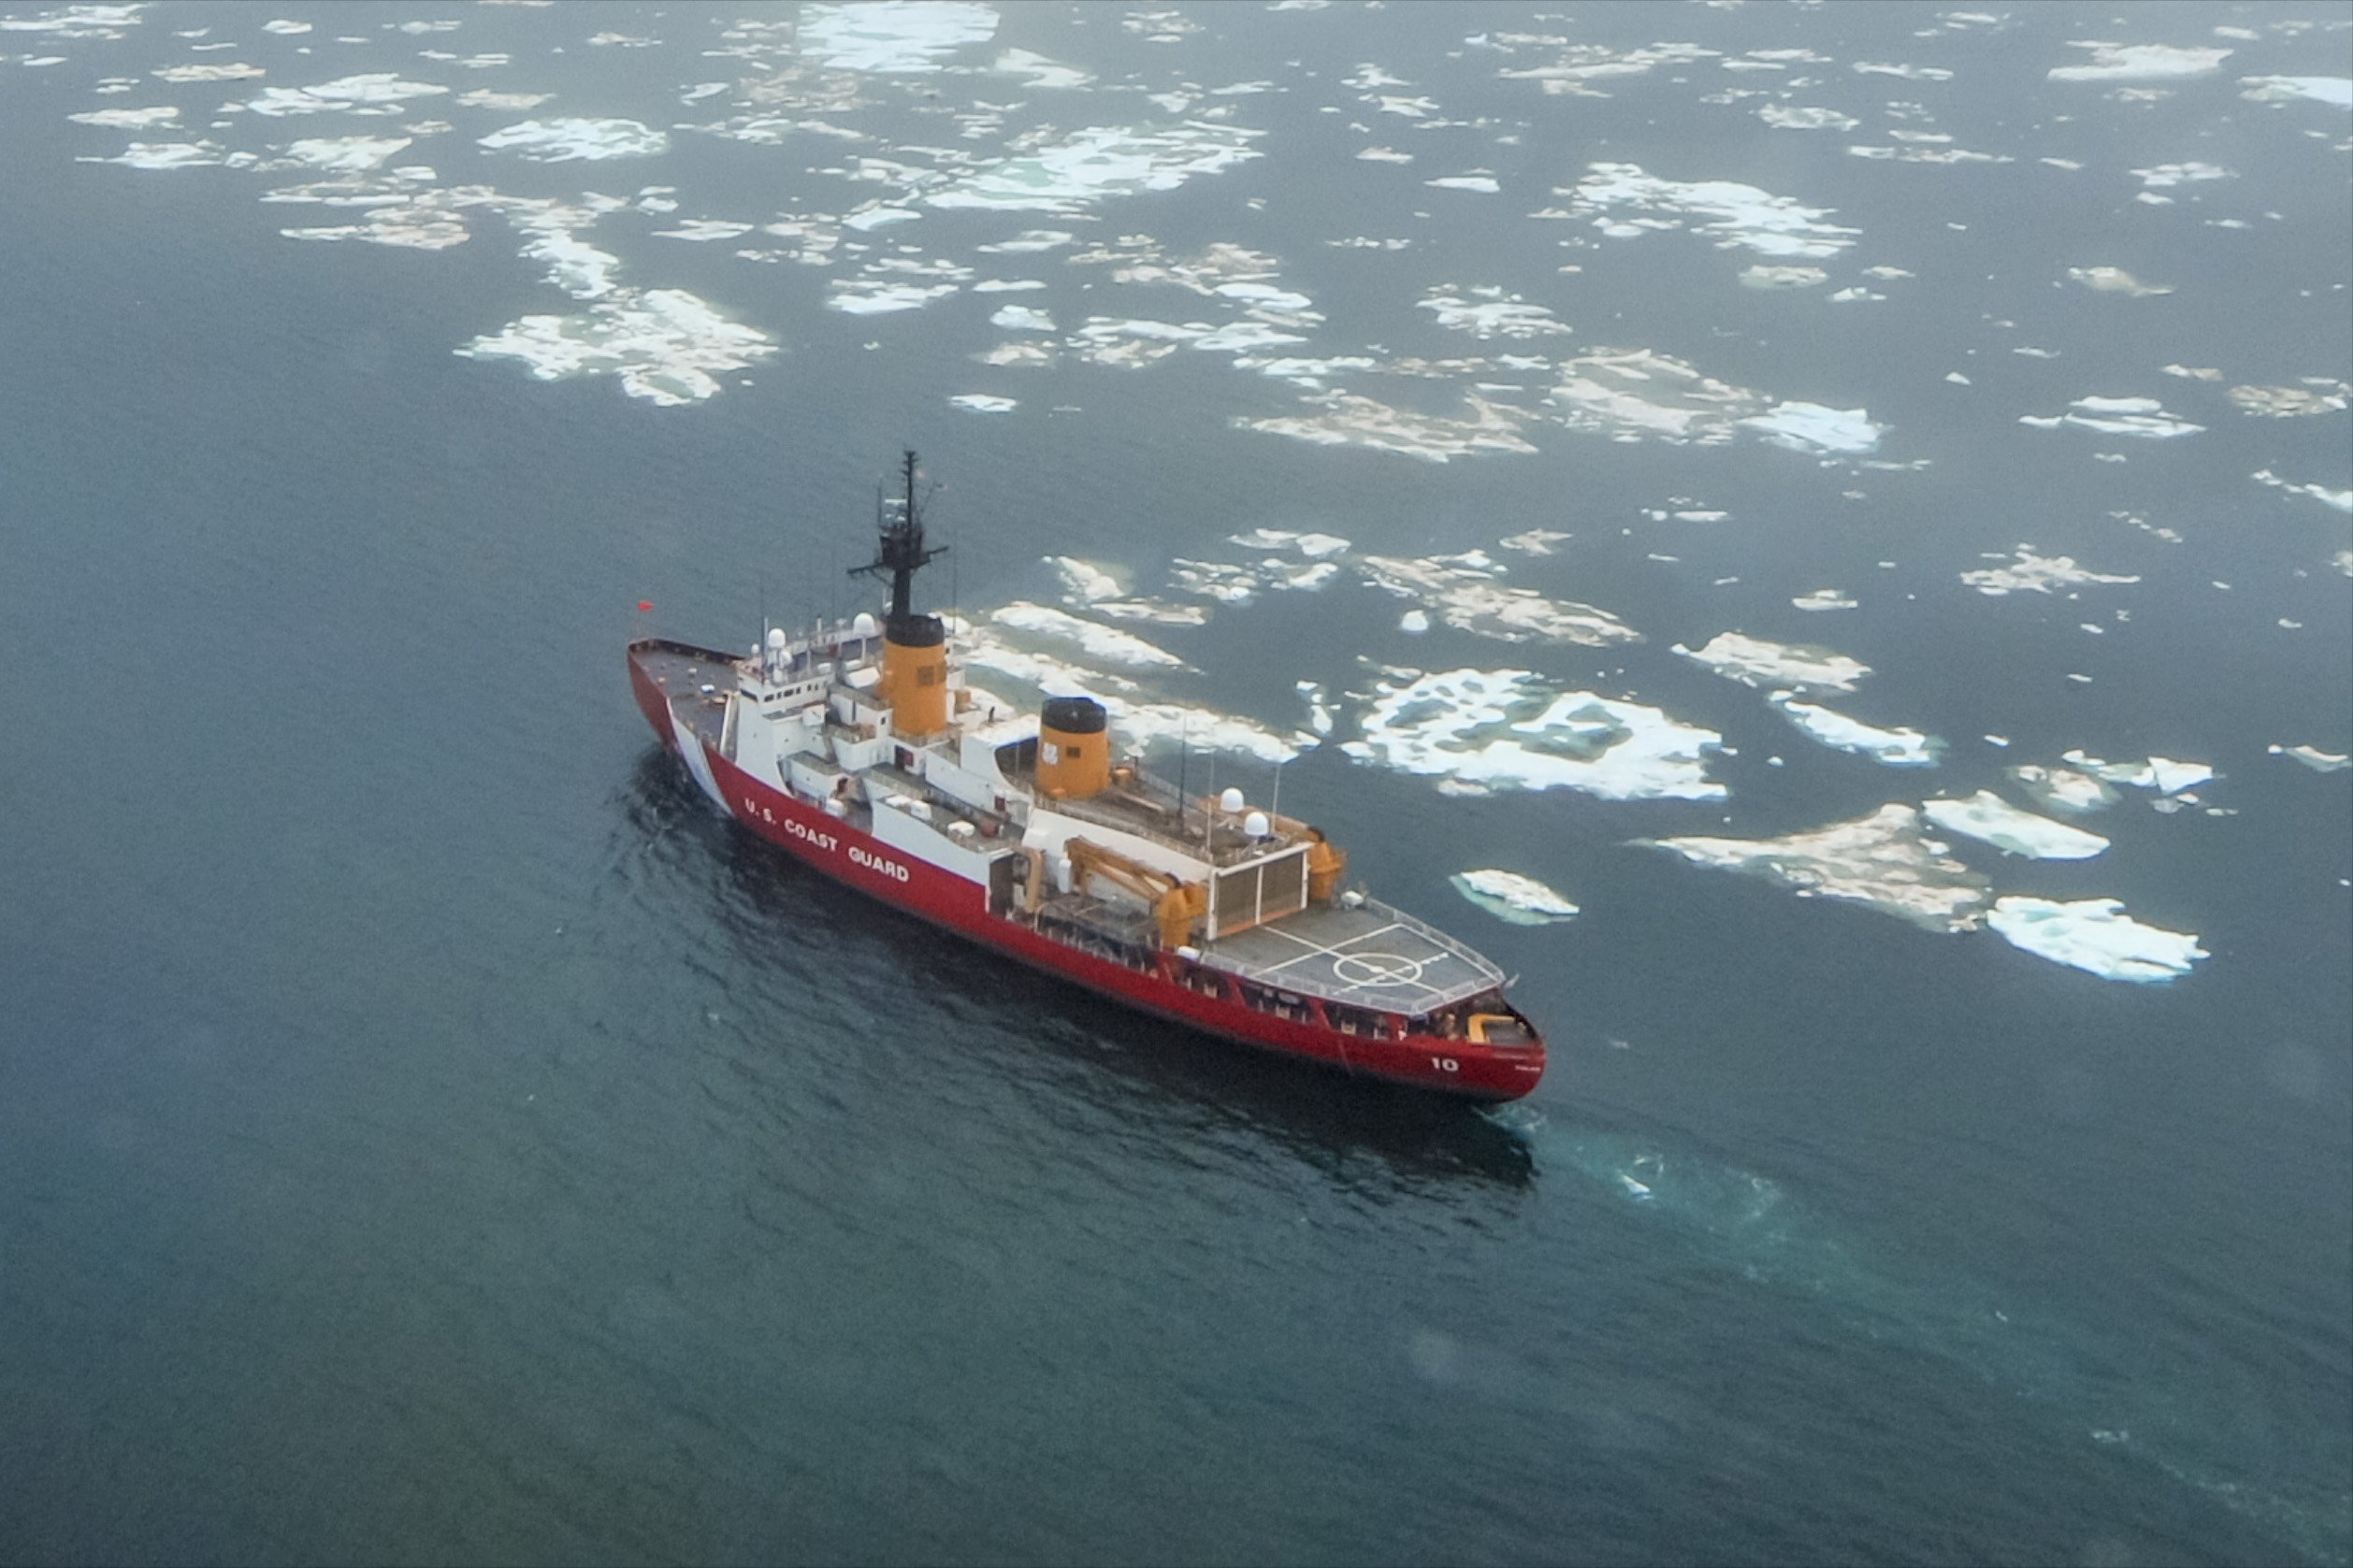 The Coast Guard Cutter Polar Star transits near the beginning of the ice edge in the Chukchi Sea north of Wainwright, Alaska, Tuesday, July 16, 2013. The heavy icebreaker's crew are undergoing ice trails following the conclusion of a major overhaul in 2012 to return the ship to service. (Petty Officer 1st Class Sara Mooers / U.S. Coast Guard)